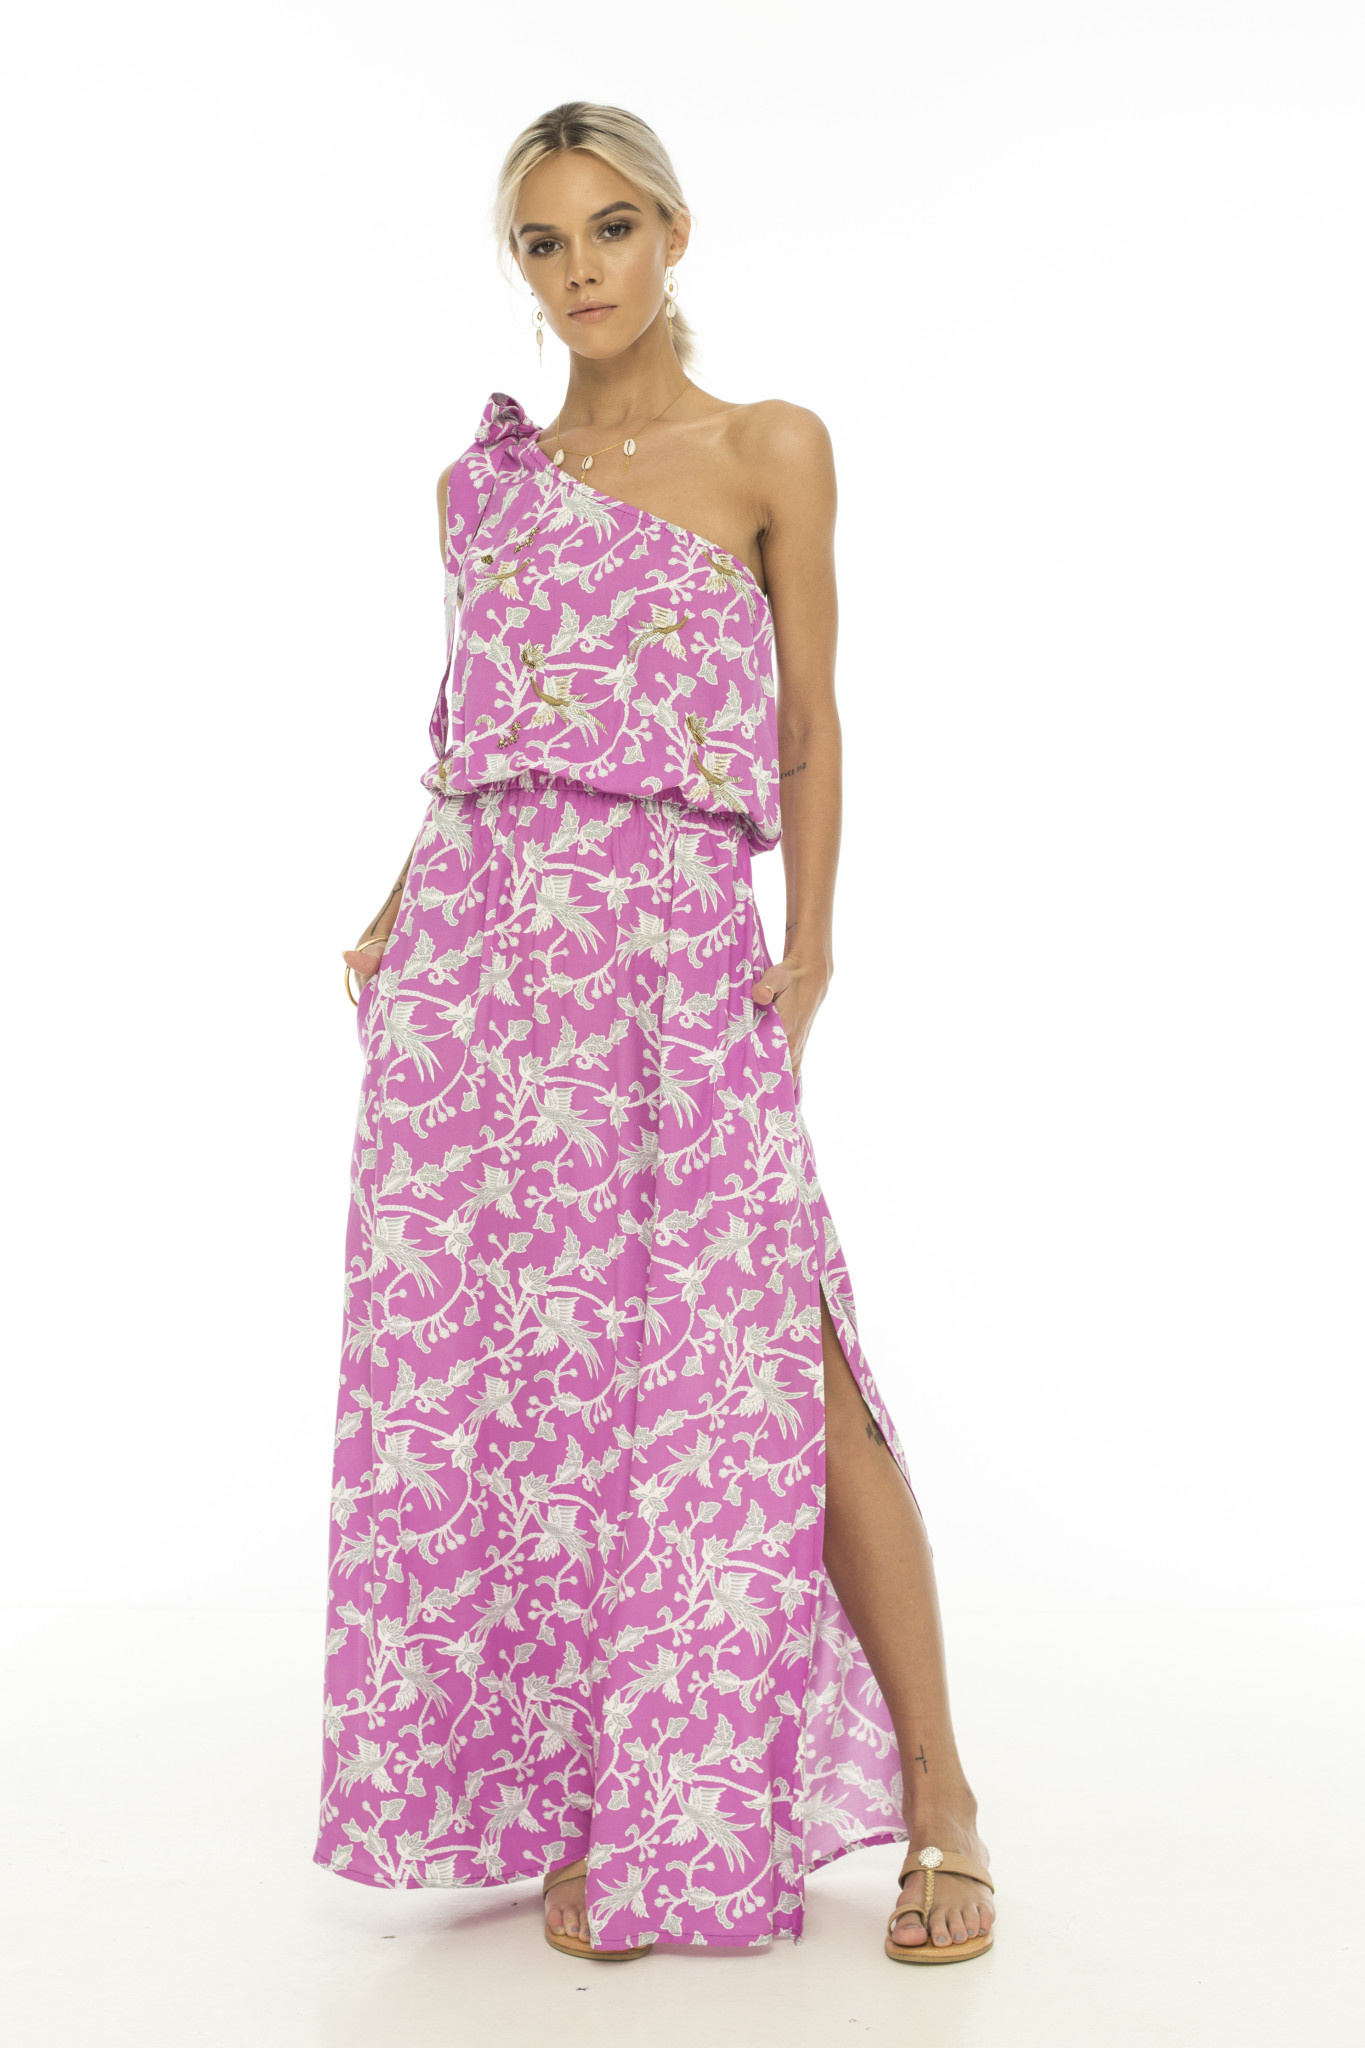 Skemo One Shoulder Maxi Dress Island Vibes Fuchsia